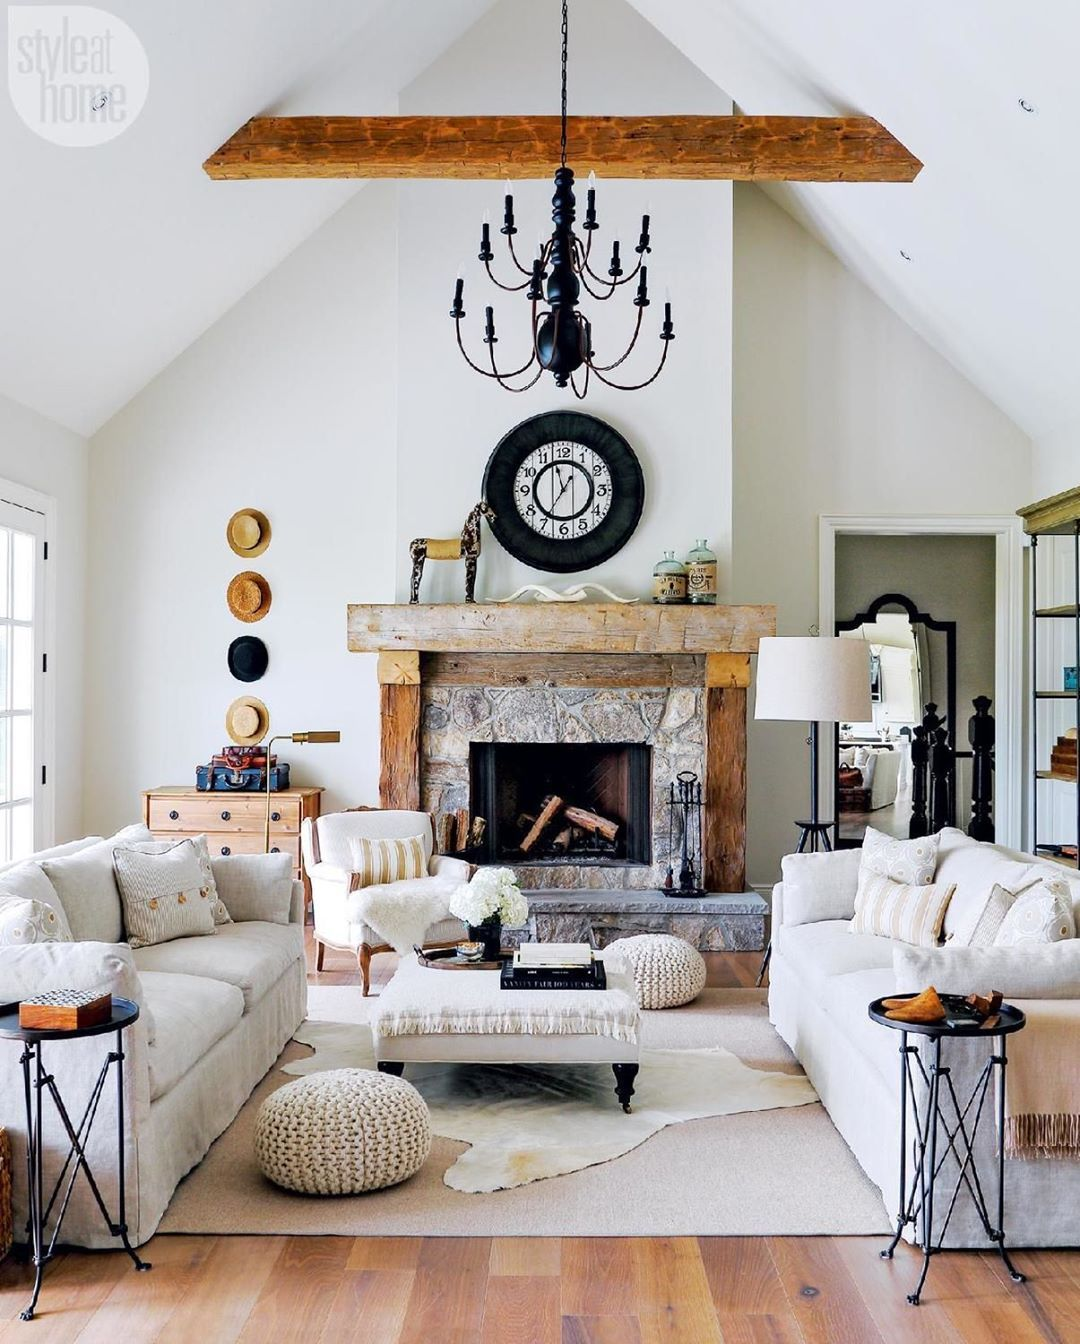 "225 Likes, 7 Comments - Style at Home (@styleathome) on Instagram: ""Your home doesn't need to be colourful to be interesting—try layered neutrals anchored by hits of…"""